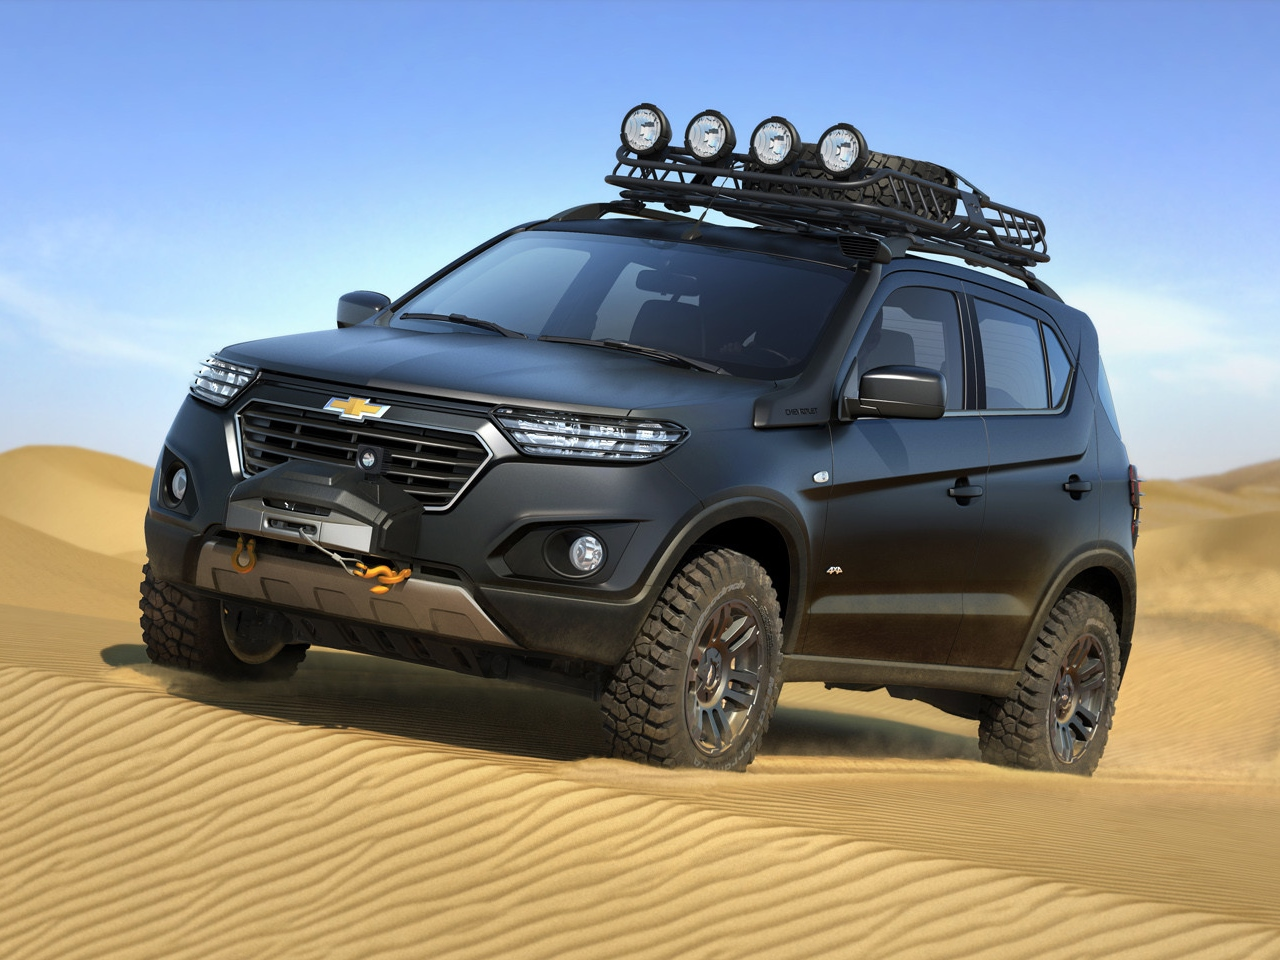 chevrolet 39 s new niva suv concept steps out of the shadows carscoops. Black Bedroom Furniture Sets. Home Design Ideas